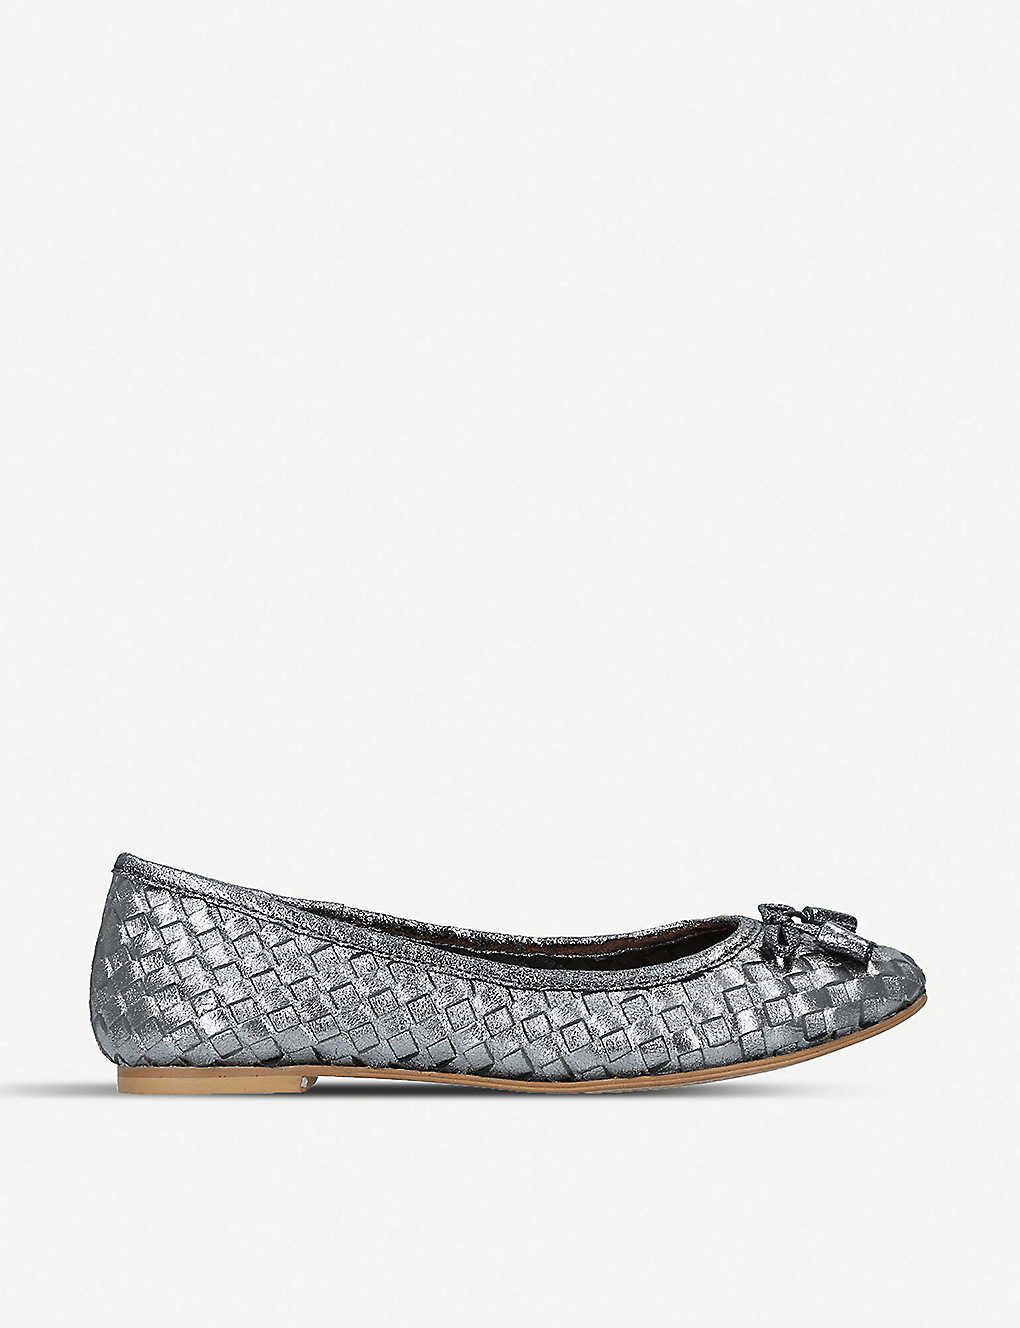 ef20f9874cabb Luggage metallic-leather ballet flats